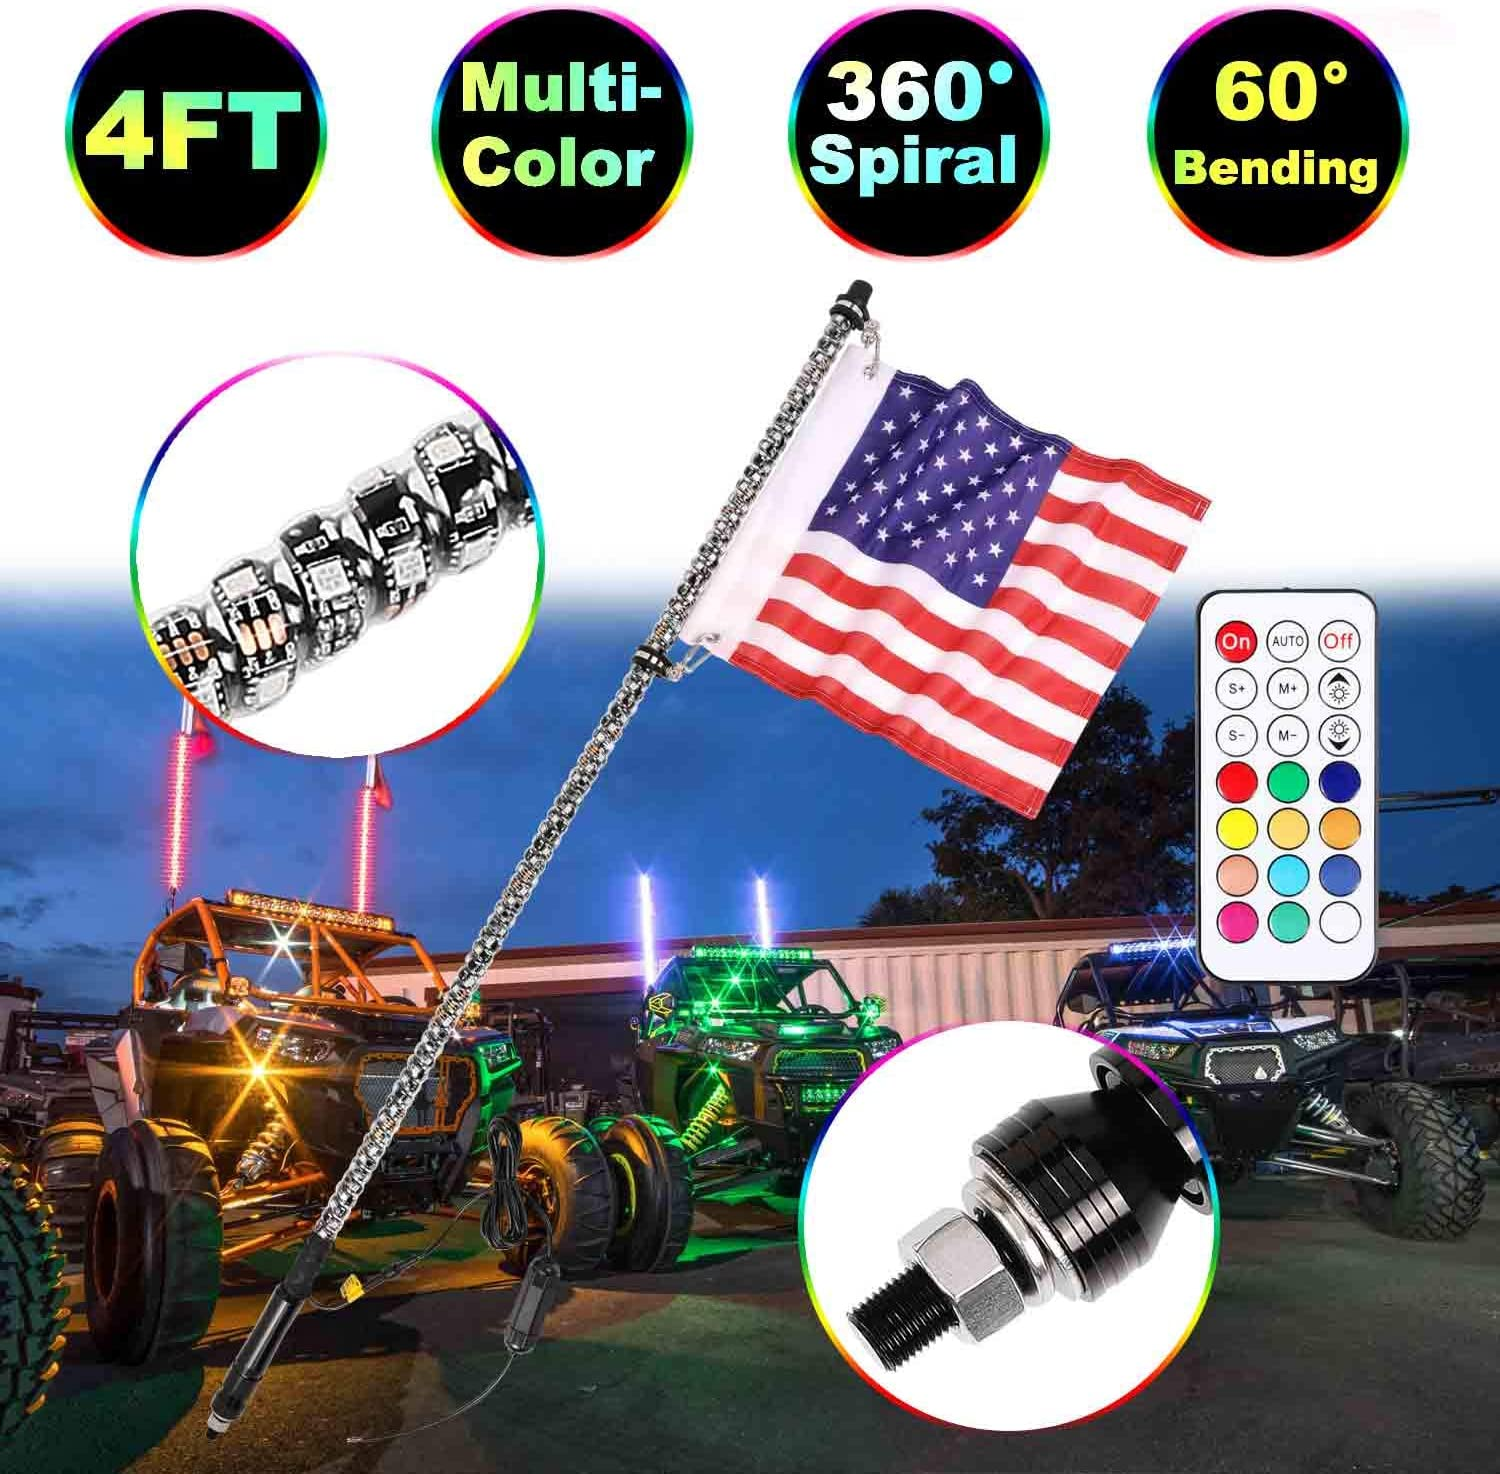 4FT LED Whip Lights Moso LED LED Whip Lights RF Remote Controlled LED RGB Lights 360/° Spiral Light Whip Antenna light With Dancing//Chasing for Off Road ATV UTV Polaris RZR Jeep Trucks 4 Wheel